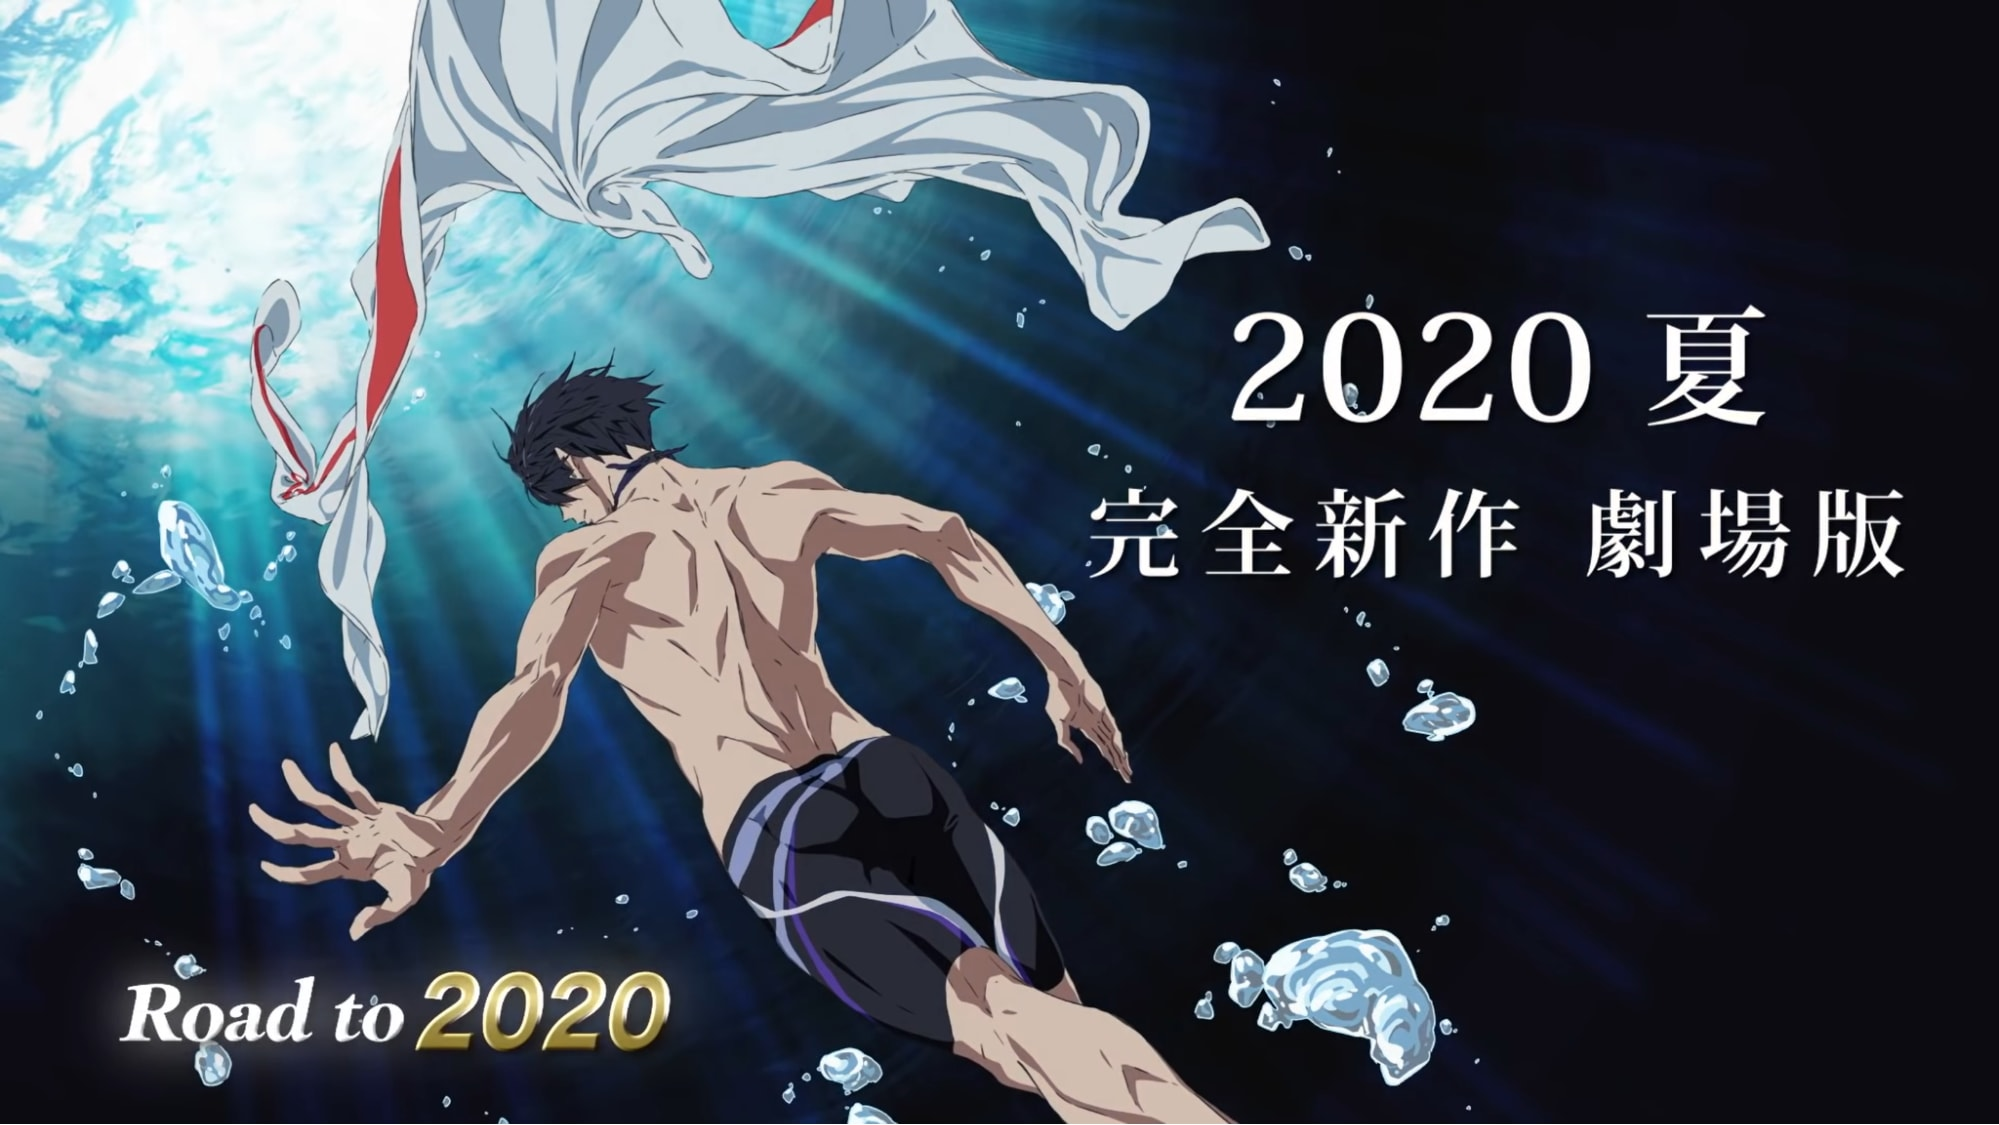 road to 2020 trailer